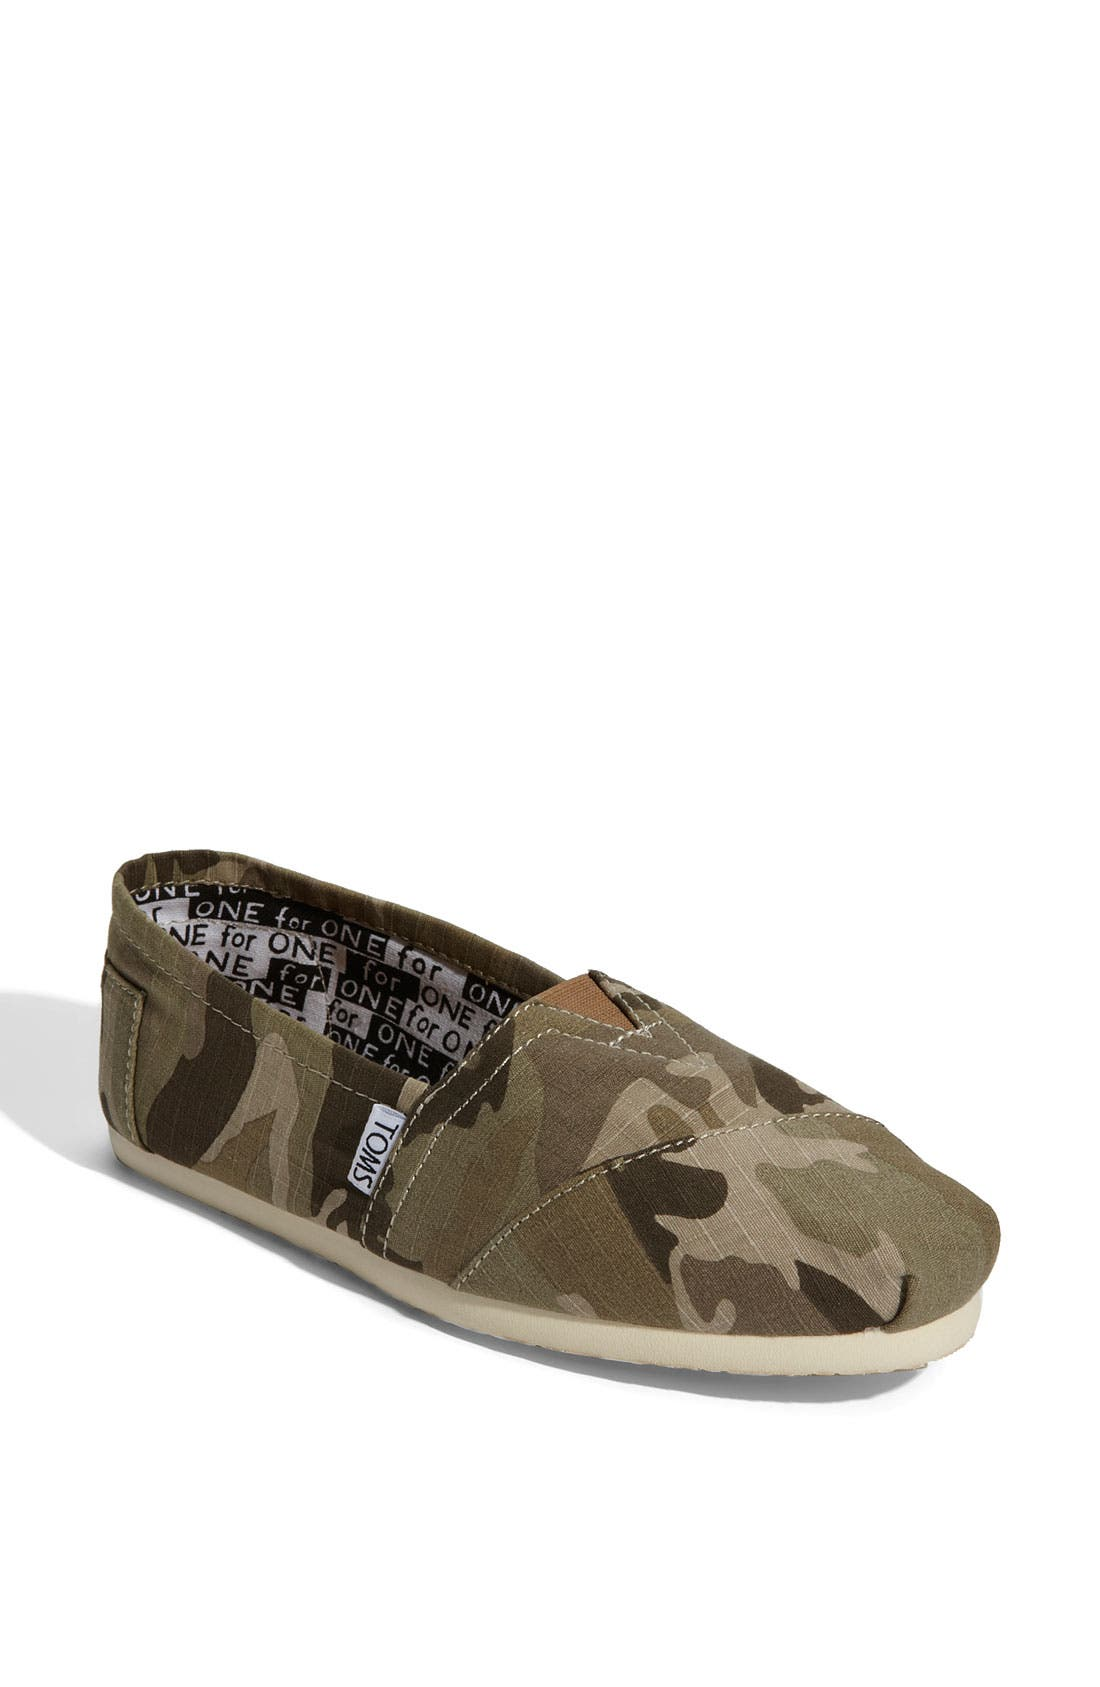 Alternate Image 1 Selected - TOMS 'Classic - Camo' Slip-On (Women) (Nordstrom Exclusive)